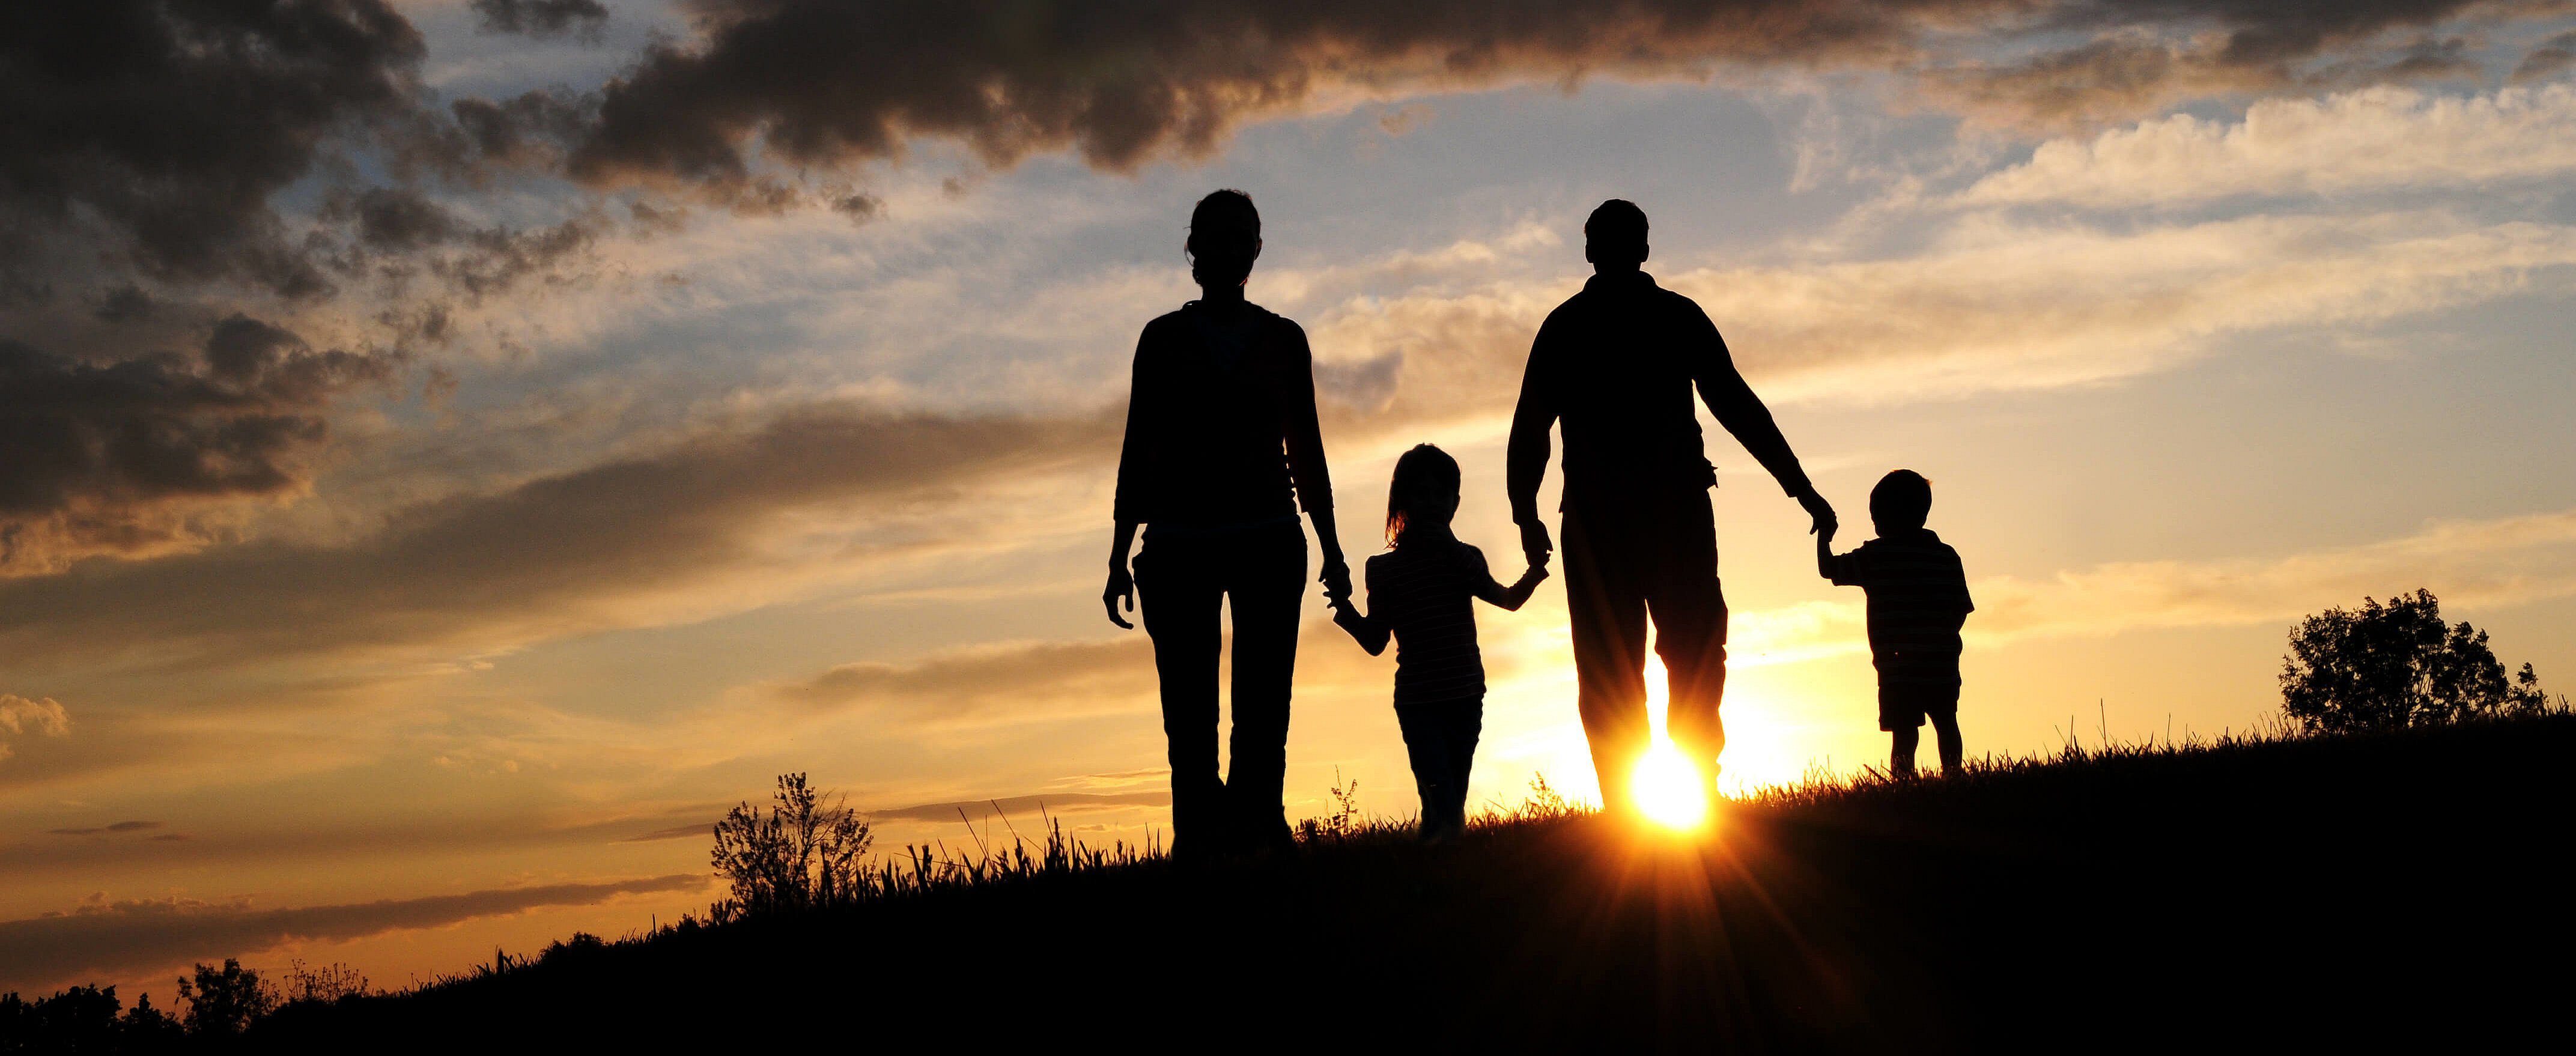 A silhouette of a family walking at sunset